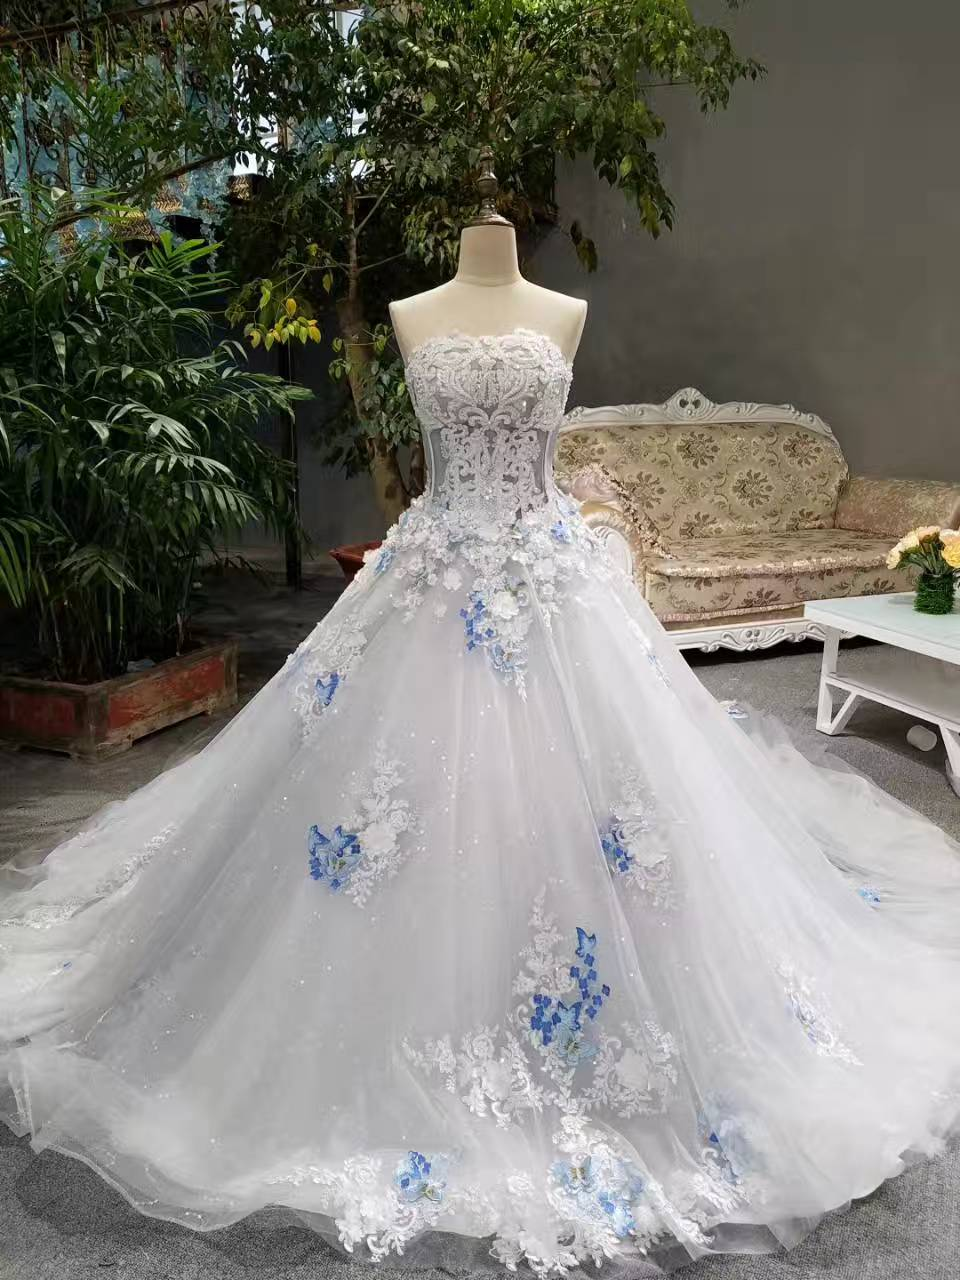 2018 Spring Summer Romantic Luxury Flowers Bow Lace Appliques Glitter Tulle  Tiffany Blue Wedding Dresses White Long Train Bridal-in Wedding Dresses  from ... 0654ad7727e3